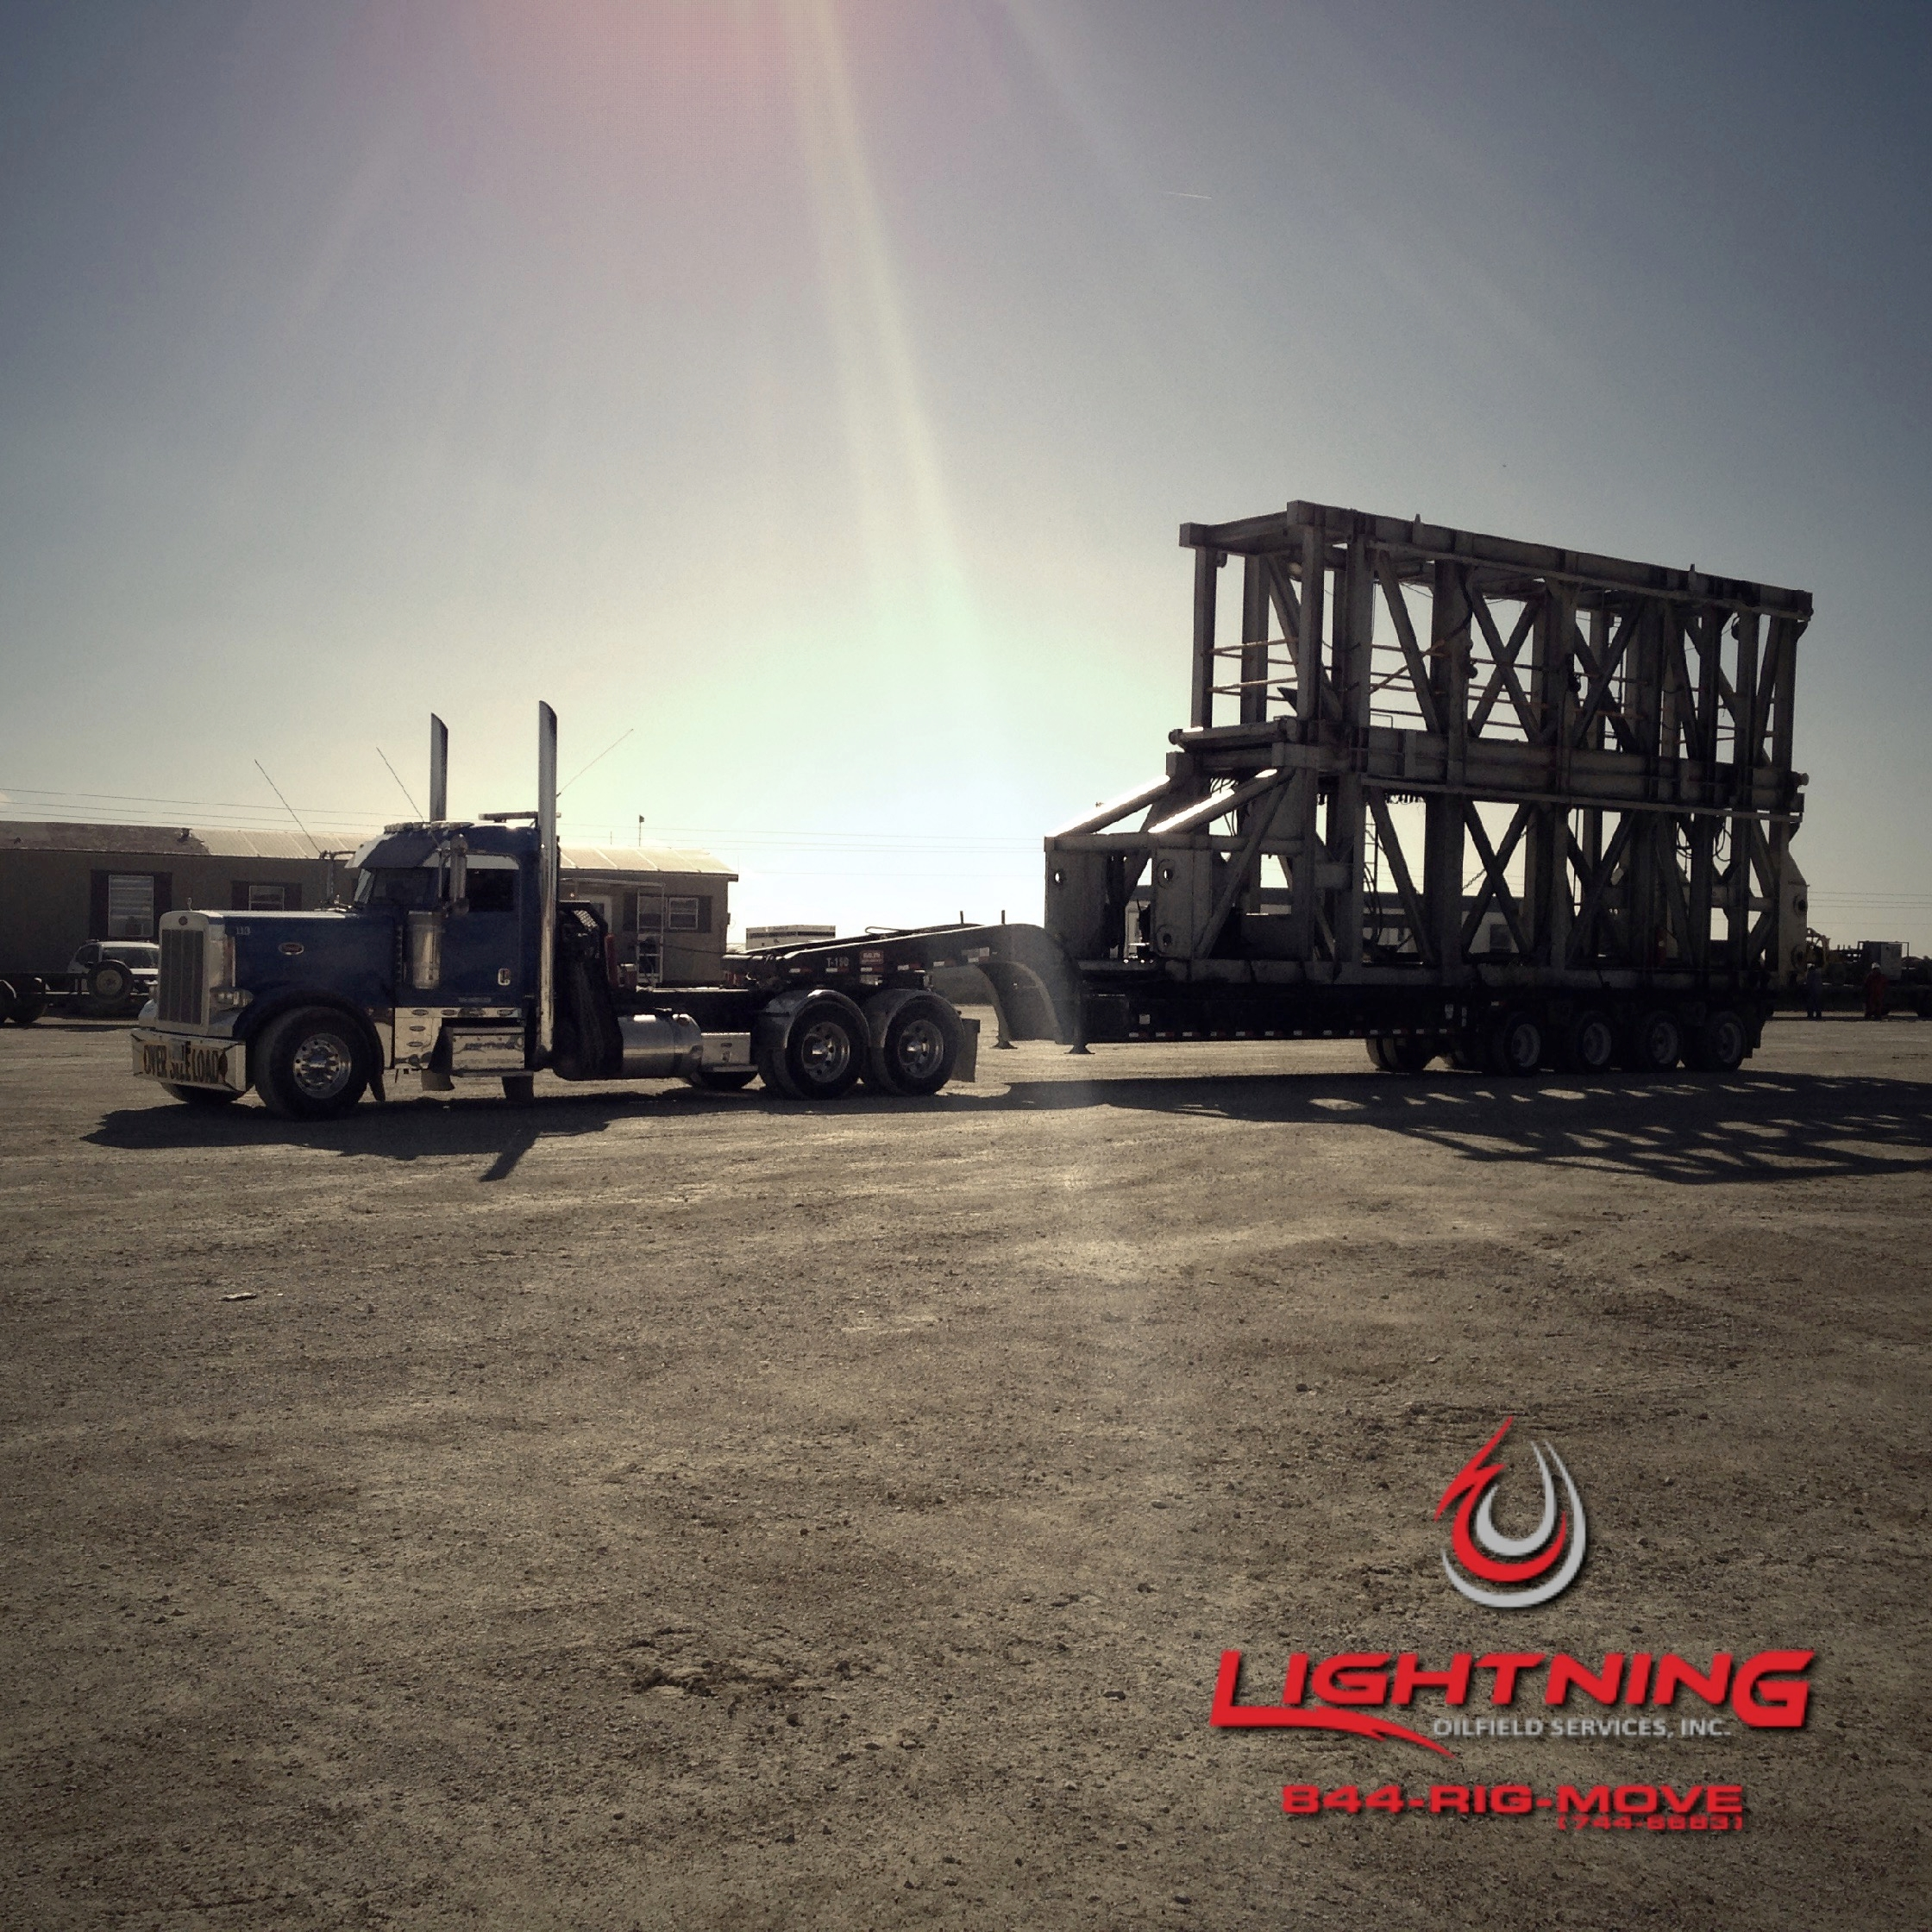 Lightning Oilfield Services image 2